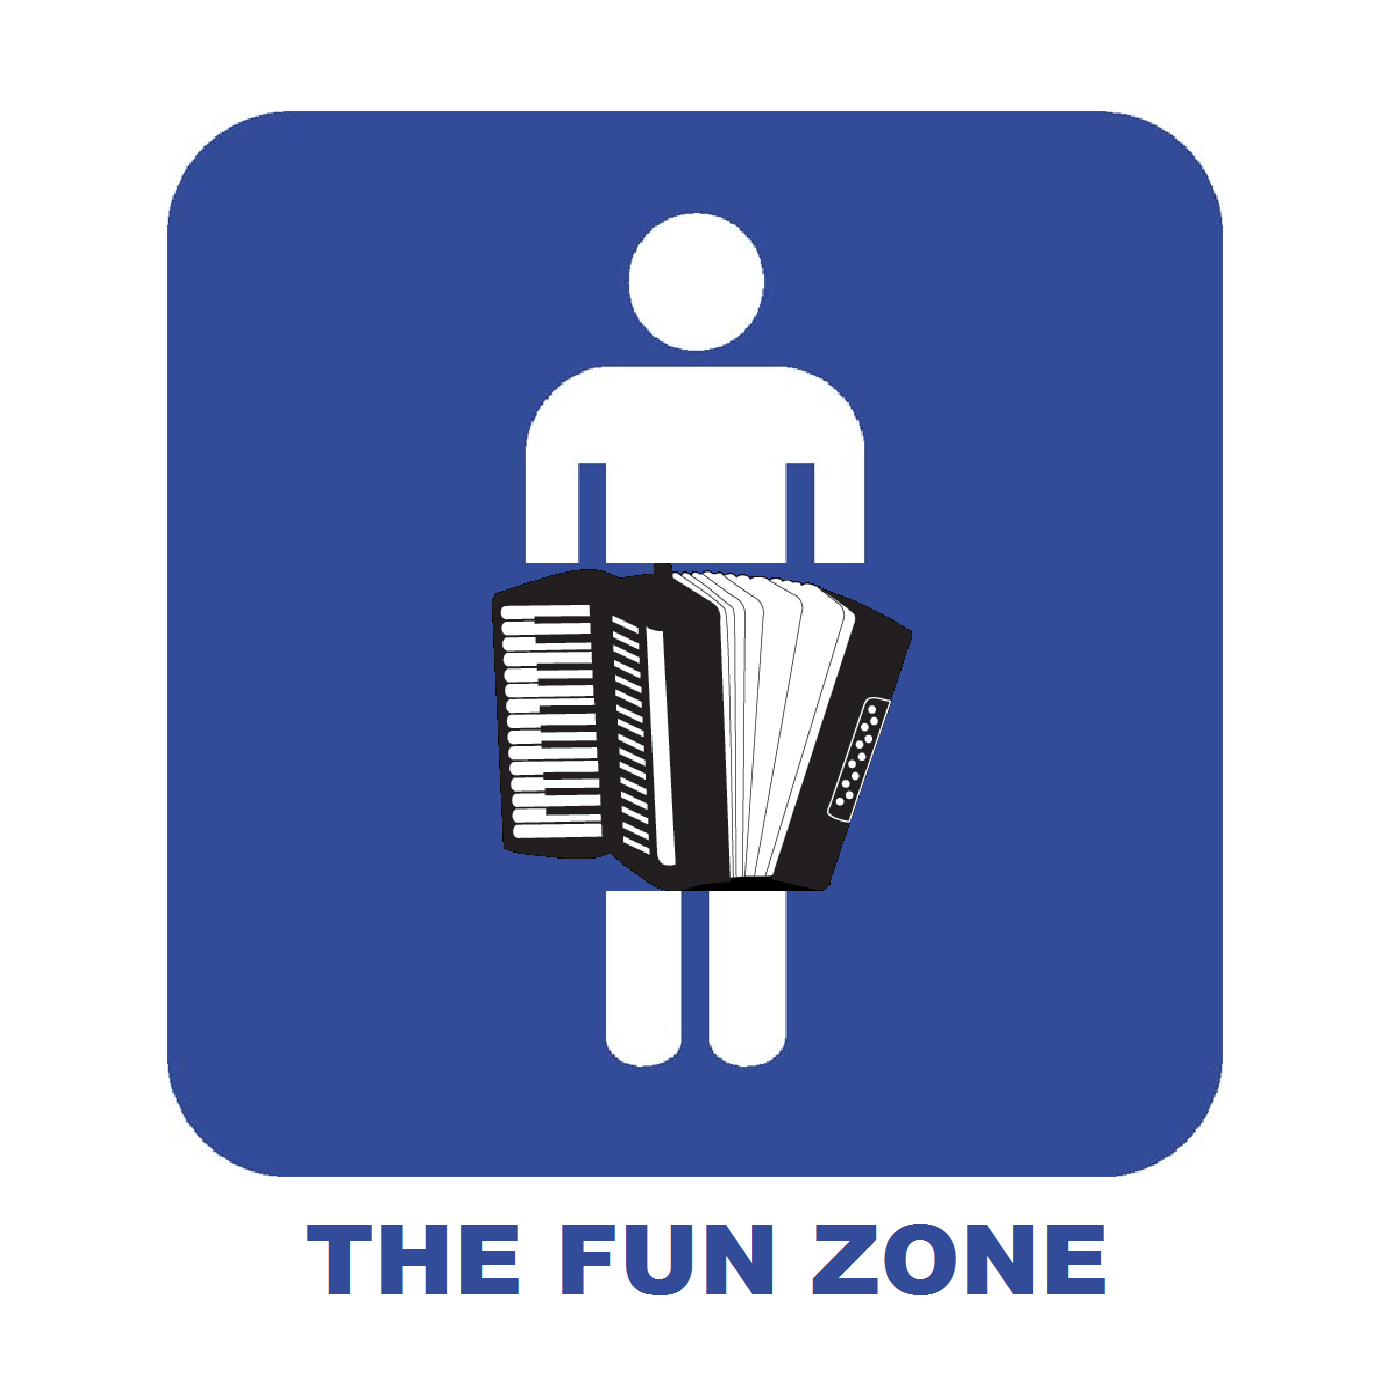 The Fun Zone